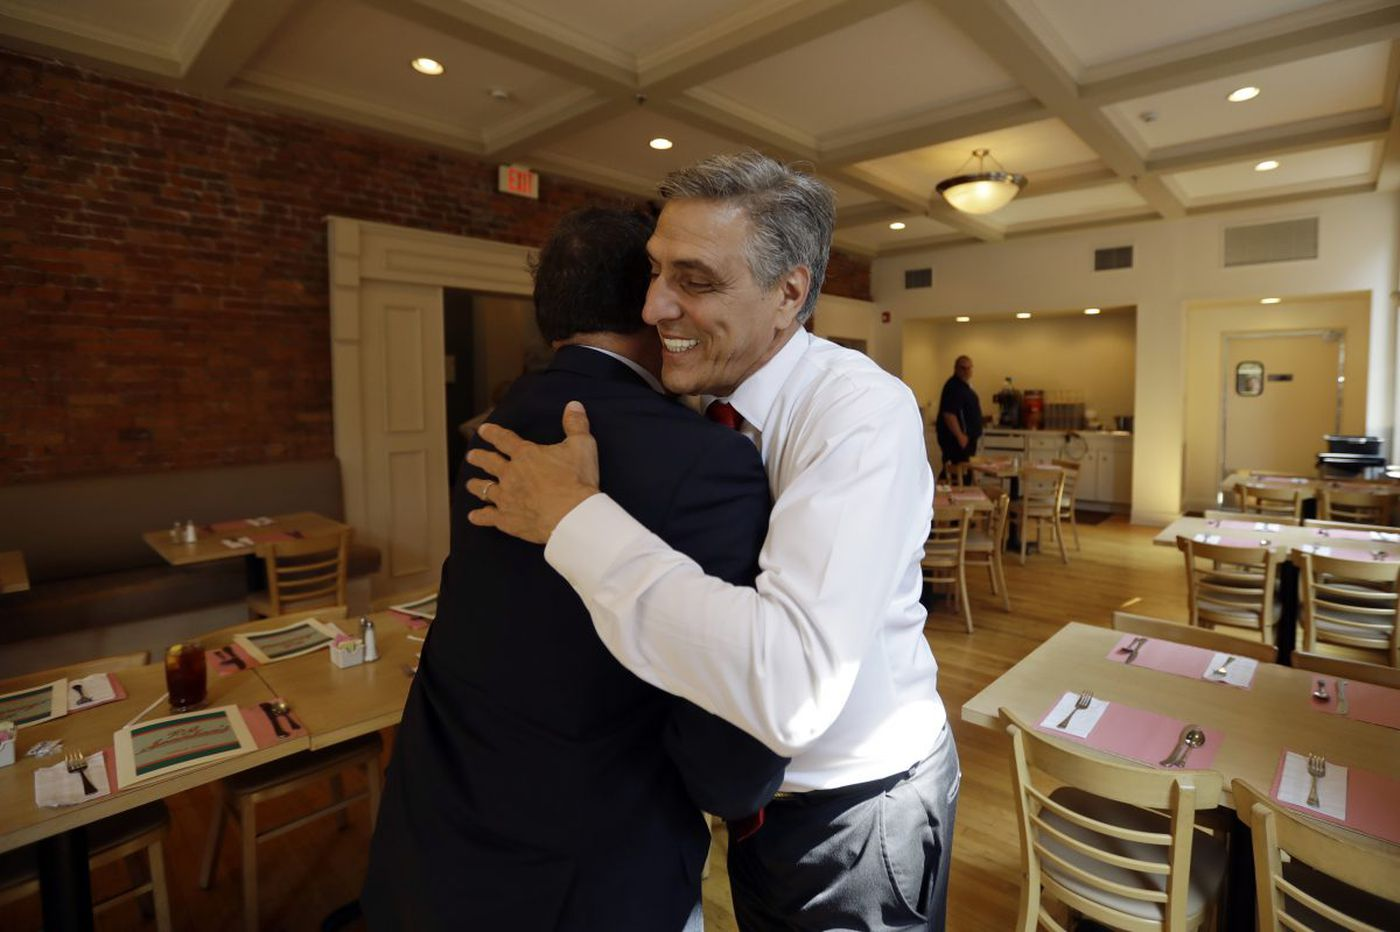 Lou Barletta wins Republican U.S. Senate primary